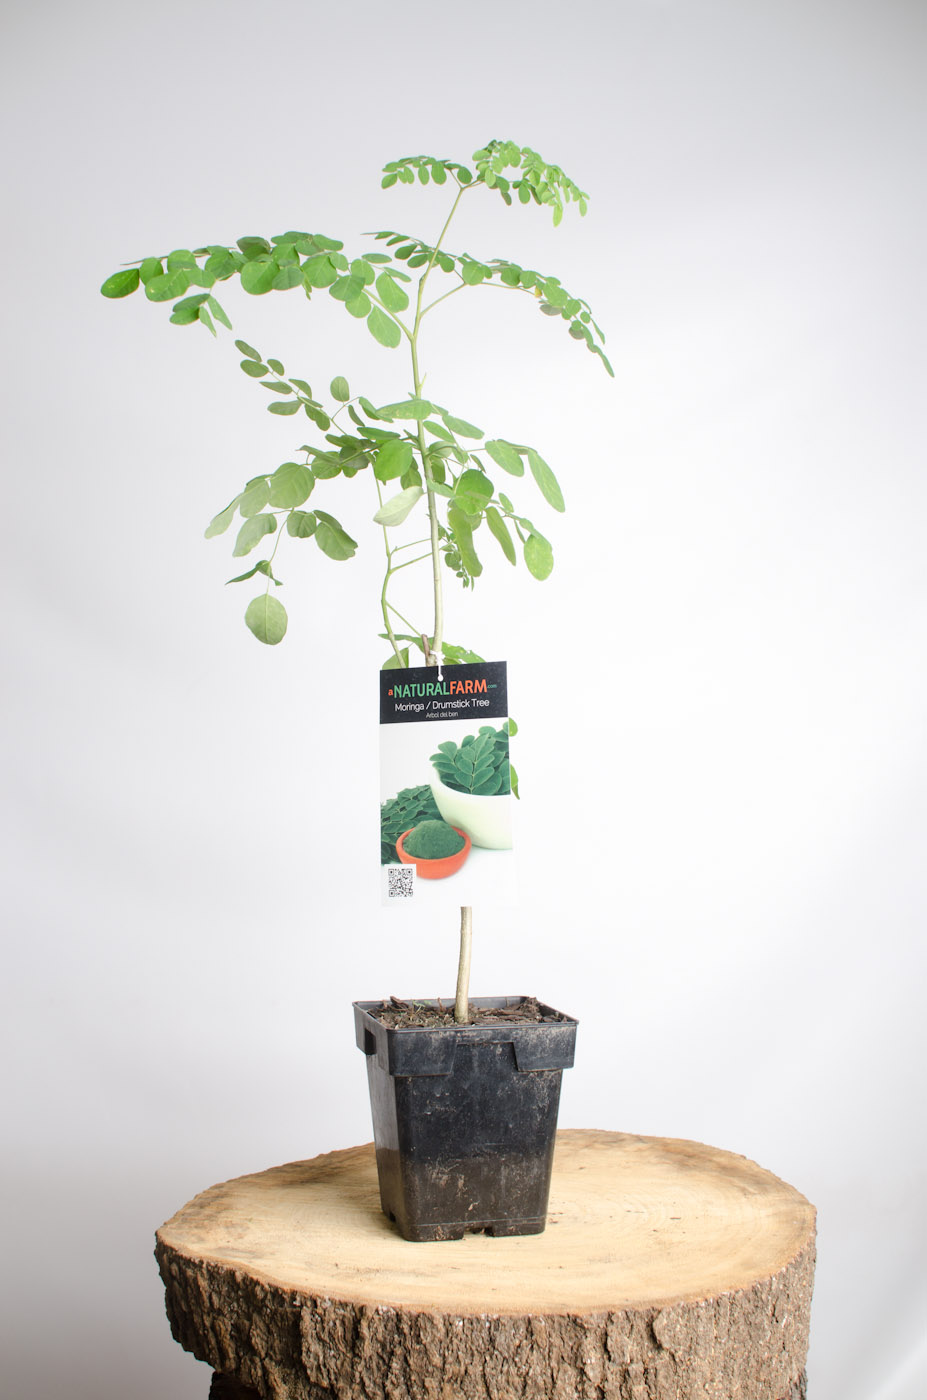 Organic Moringa Seeds Free Shipping Chemical Free And Grown On Our Farm A Natural Farm